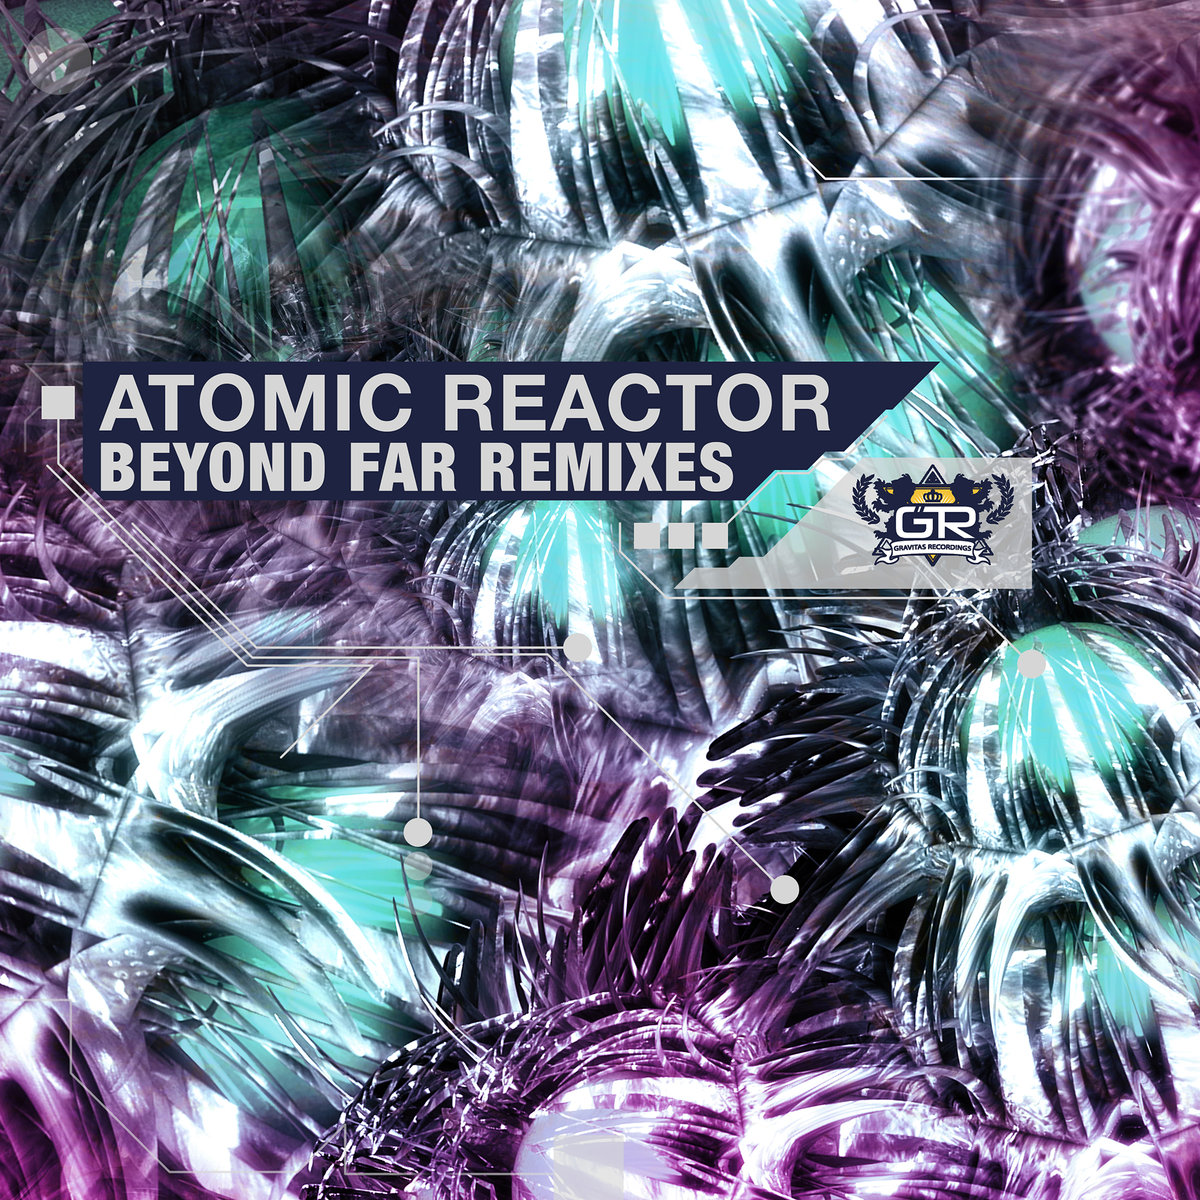 Atomic Reactor - Beyond Far (Root Mass Remix) @ 'Beyond Far Remixes' album (Austin)